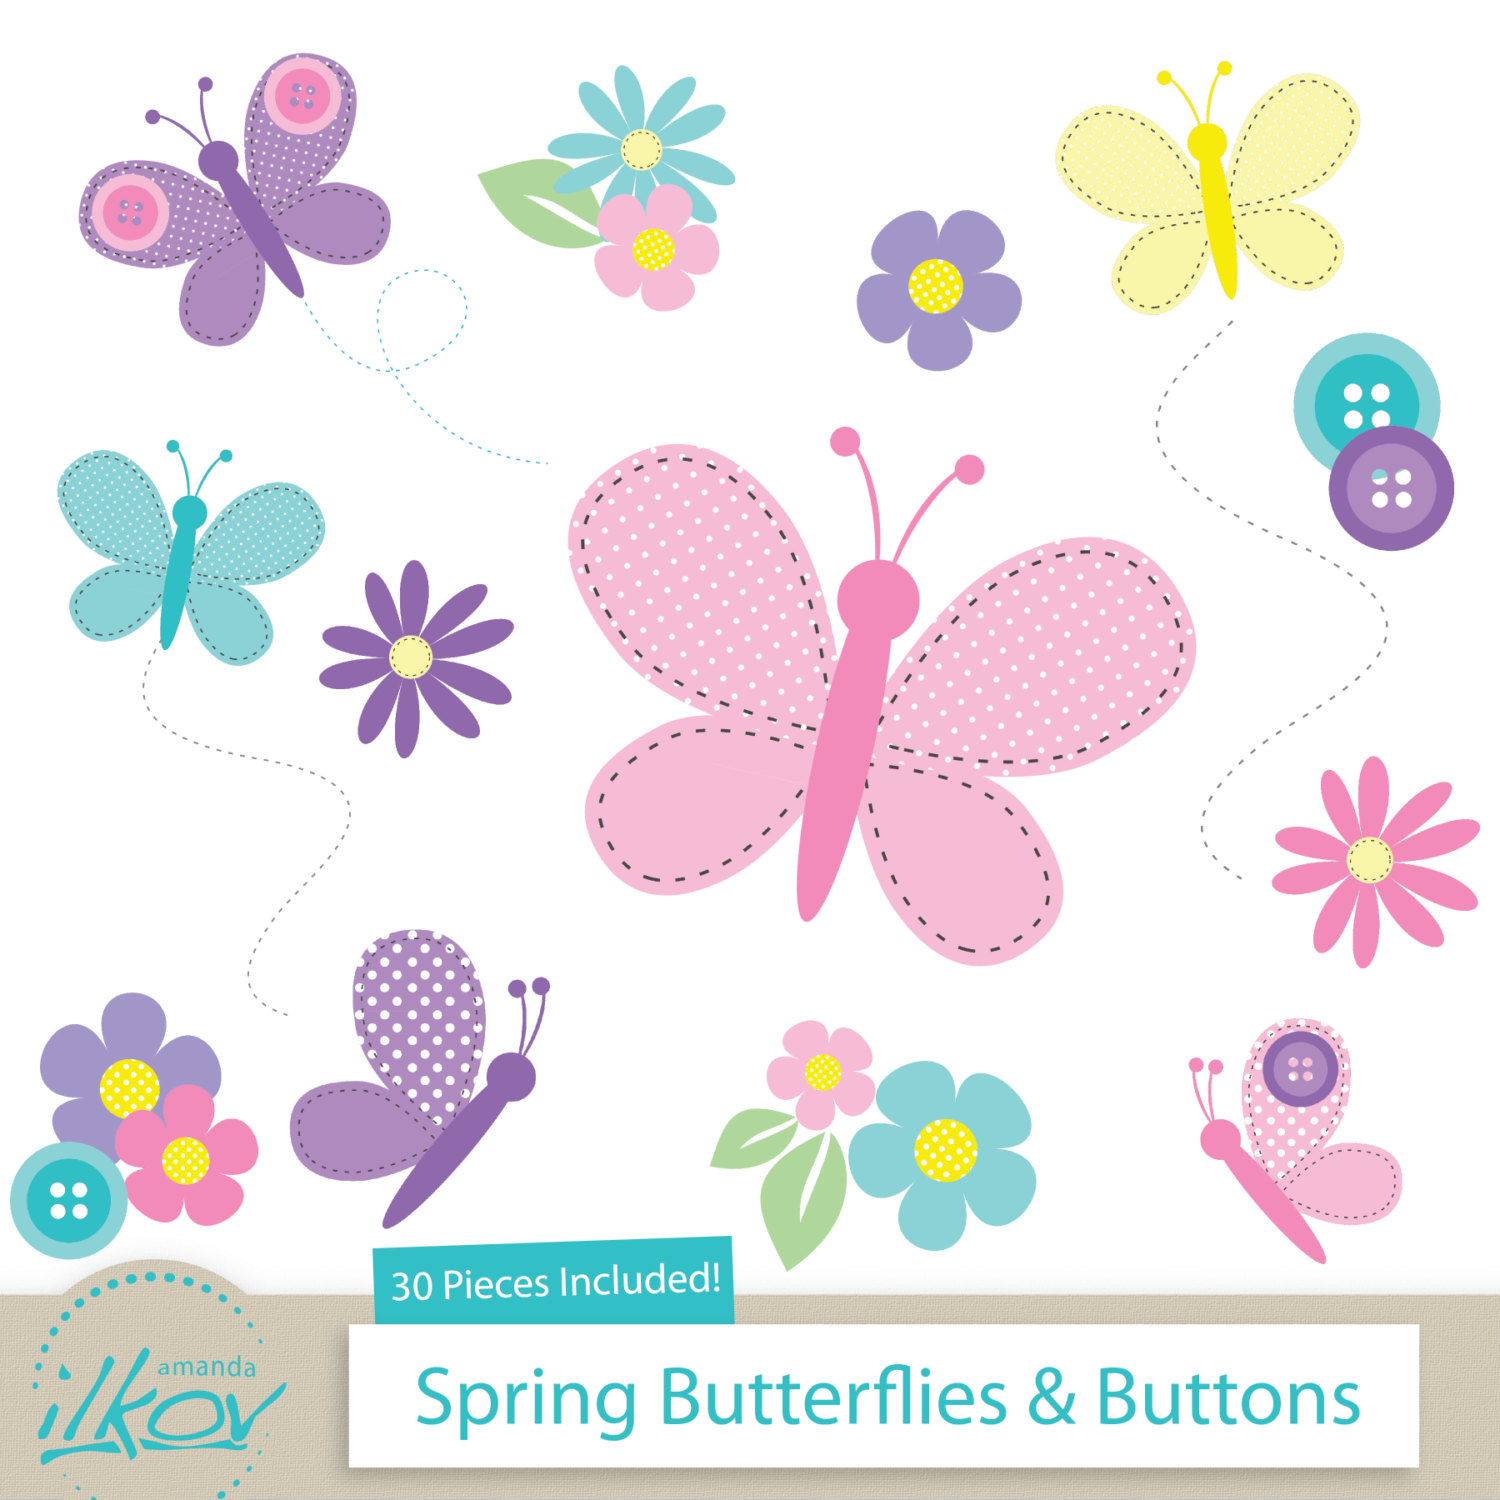 Spring Butterflies & Buttons Clipart for Digital by AmandaIlkov.